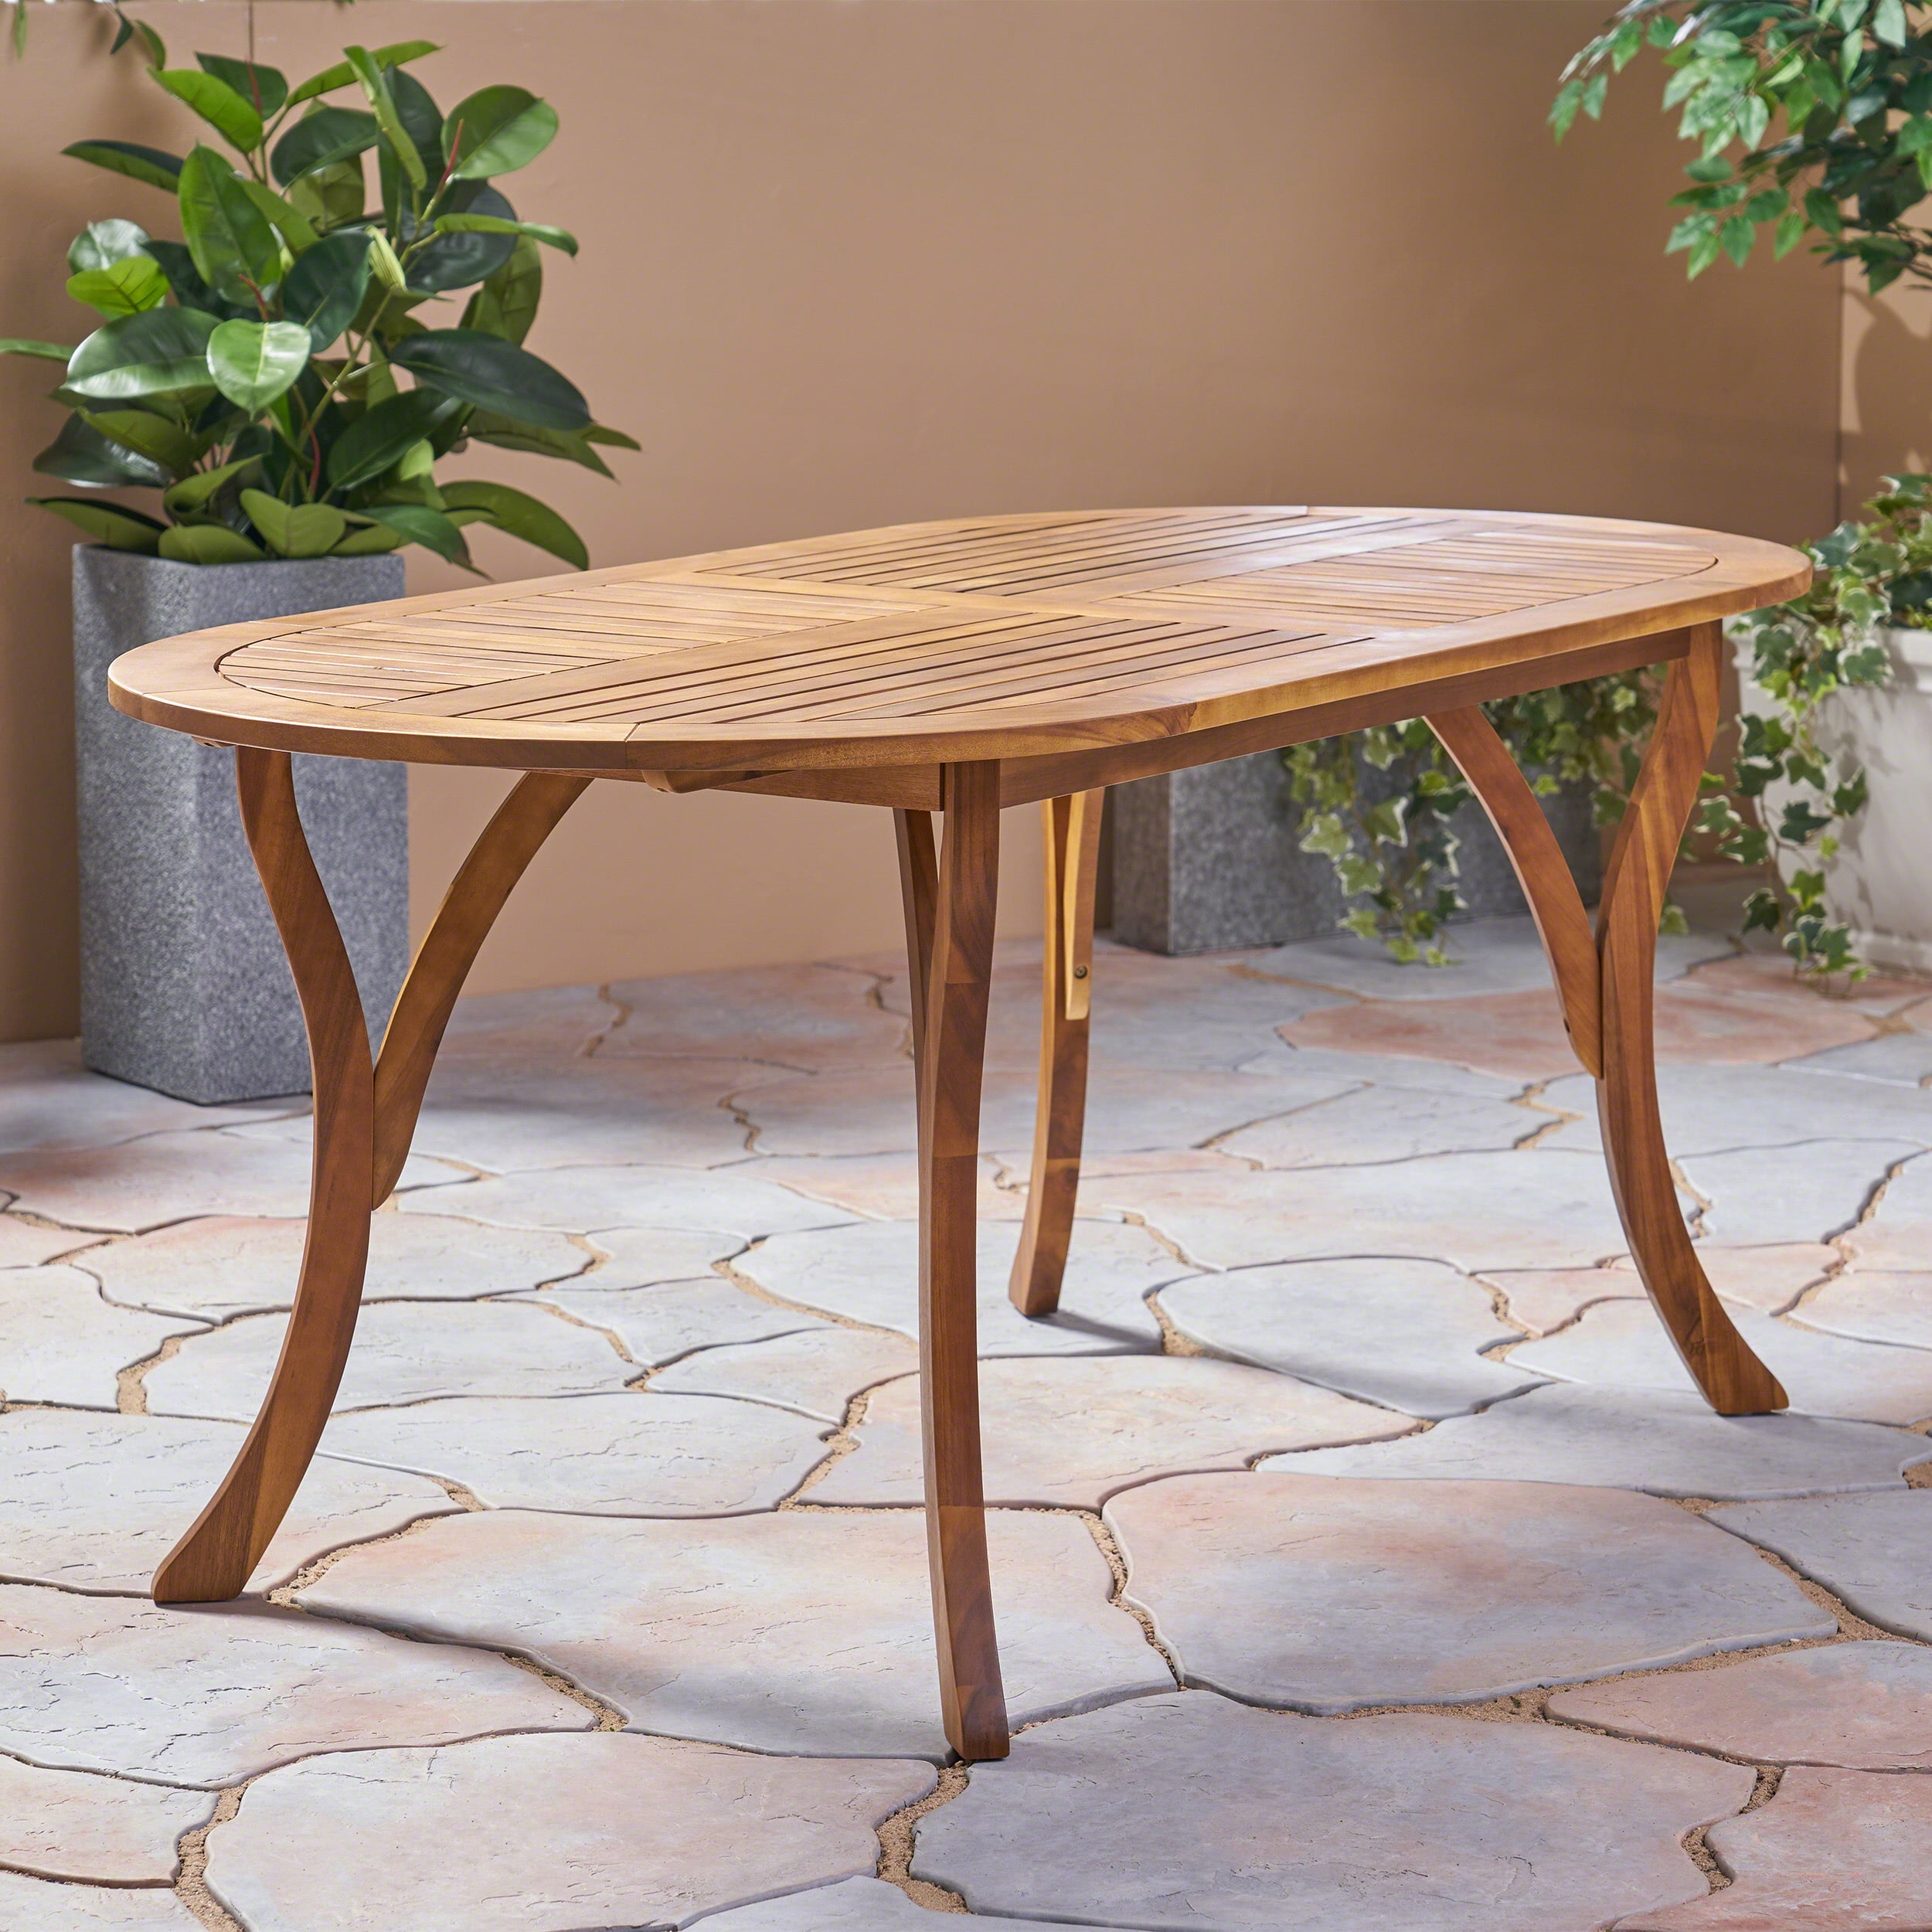 Skye Outdoor 70'' Acacia Wood Round Dining Table, Teak by Noble House